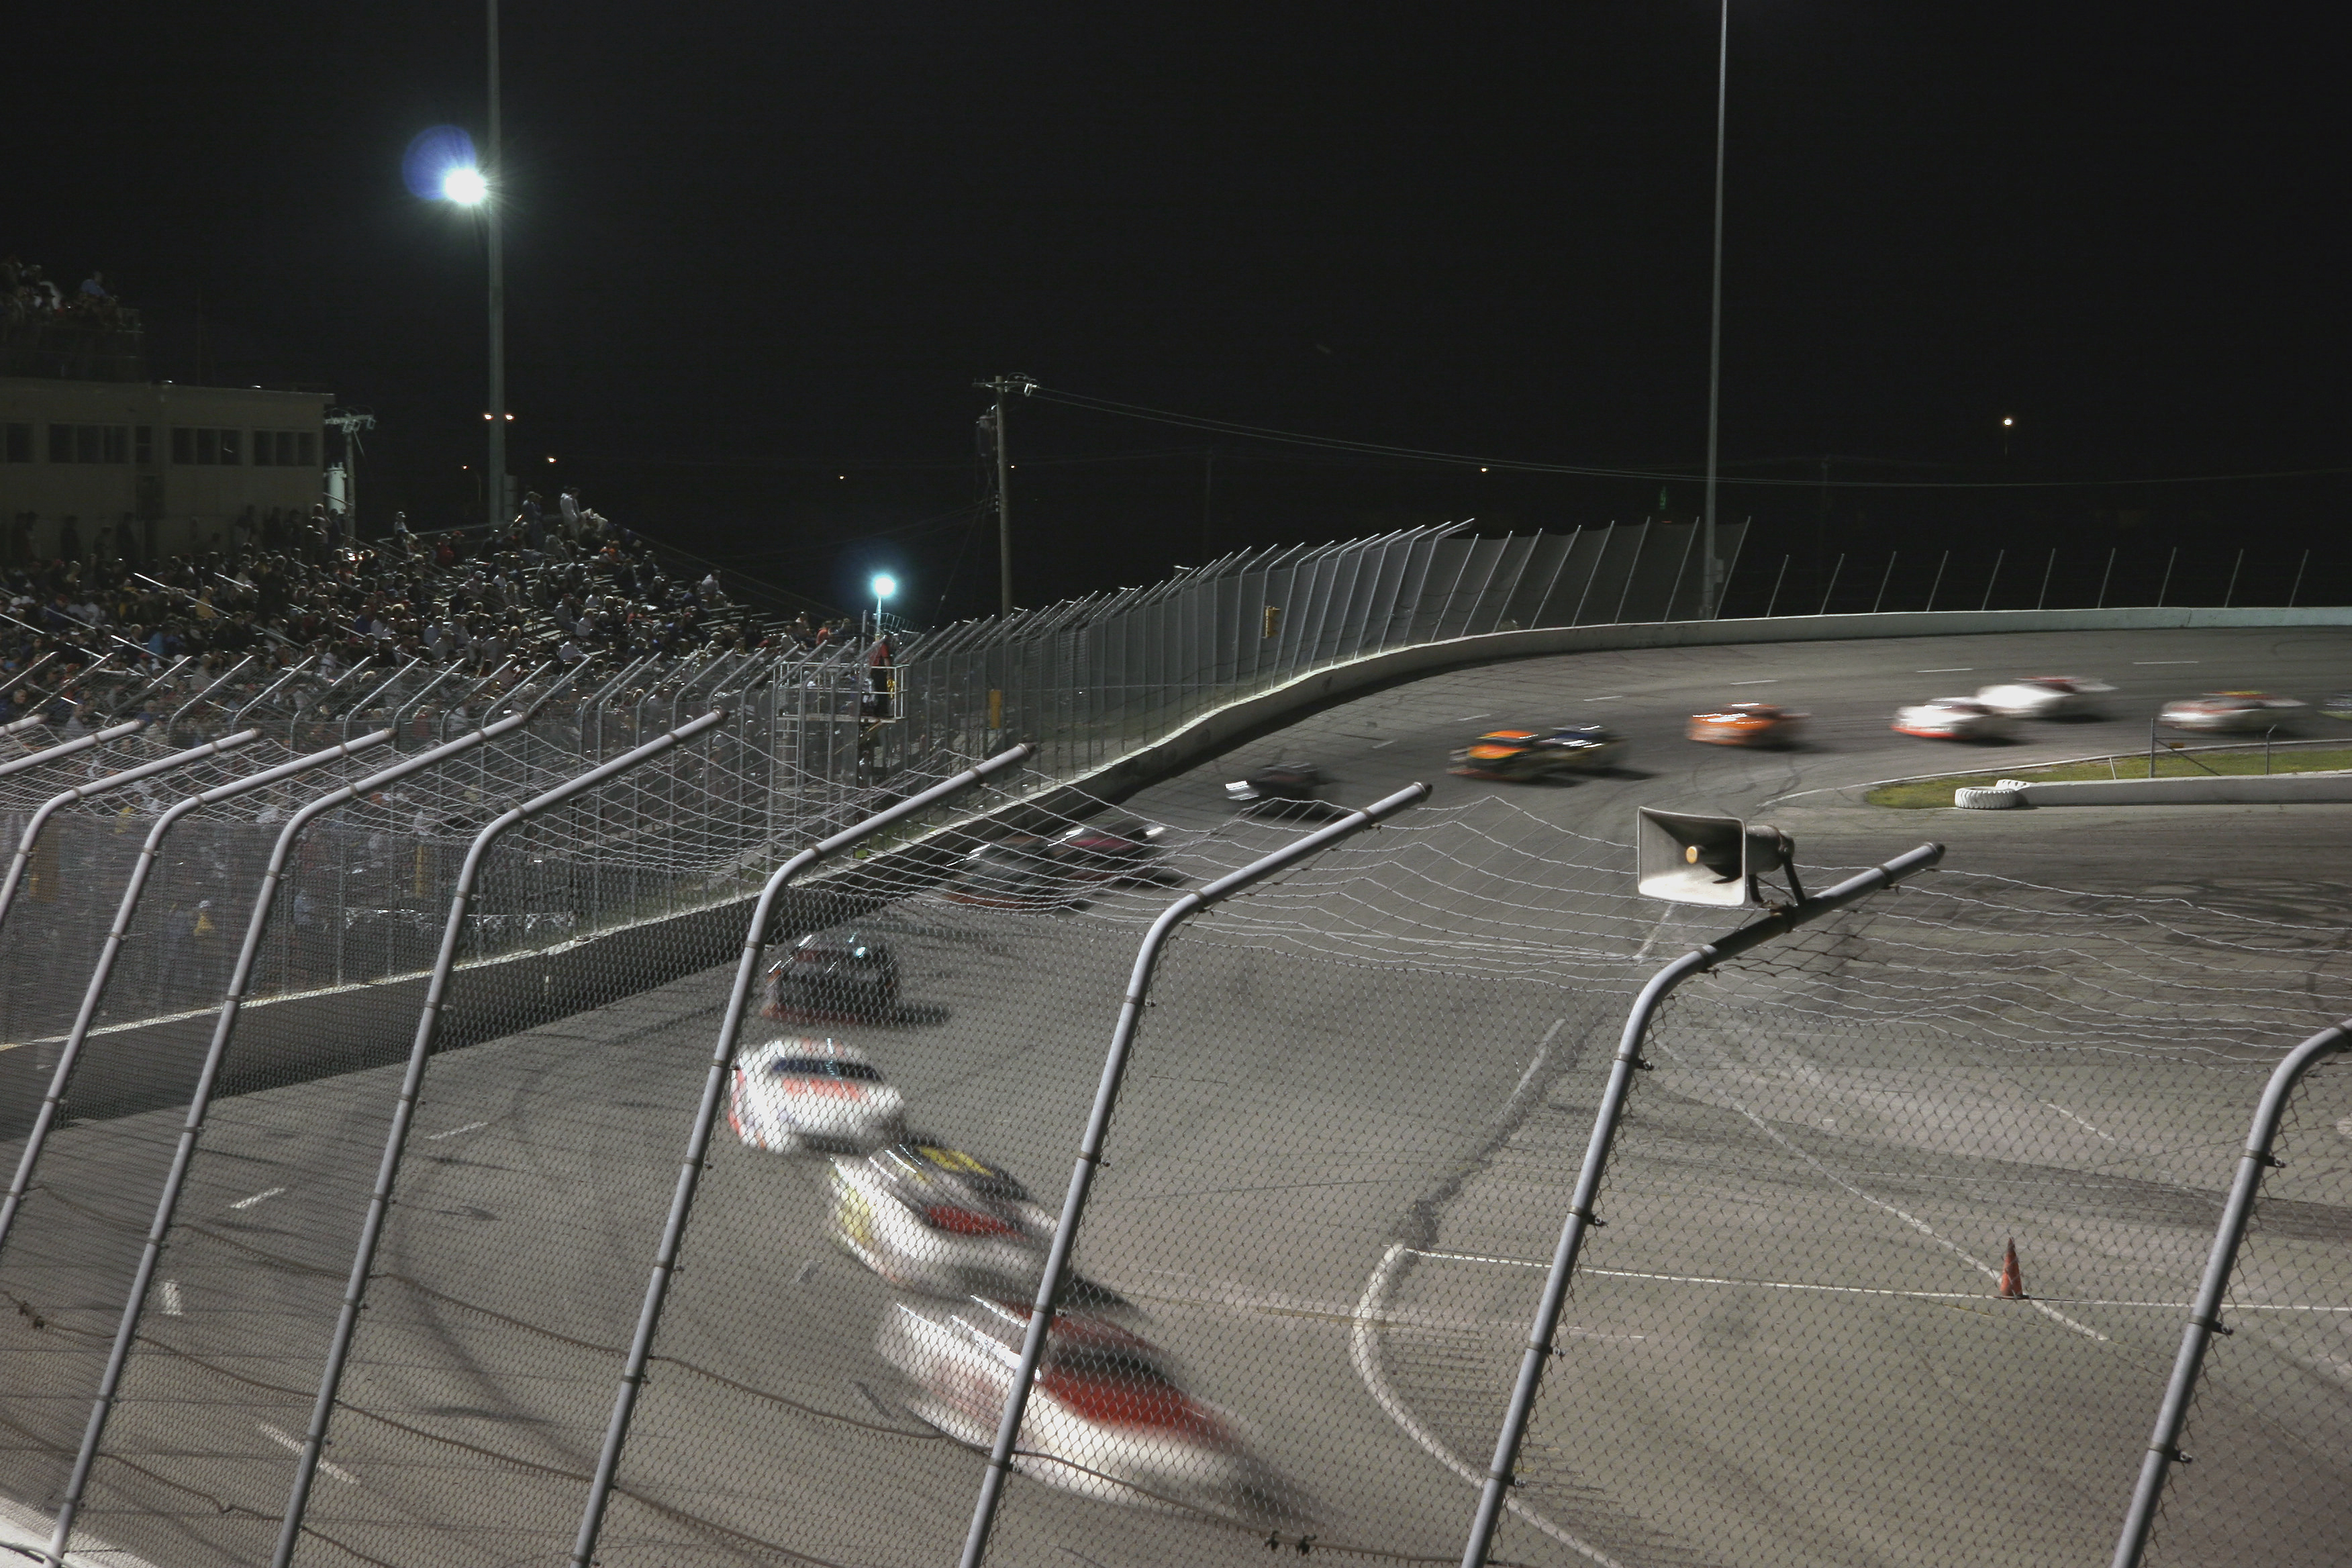 Cars hurtle around a track.